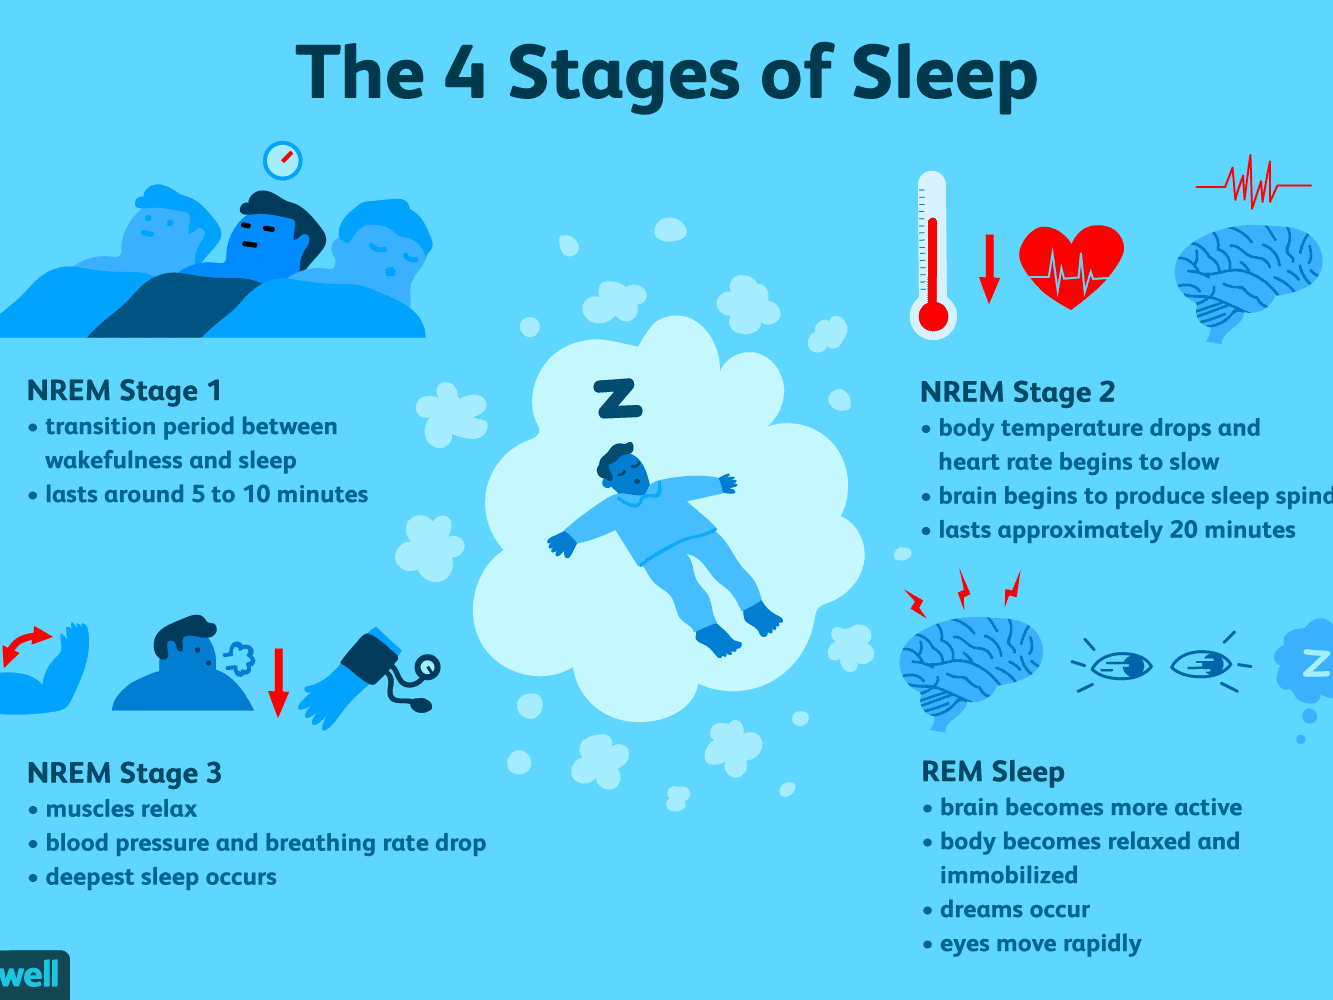 The 4 Stages of Sleep (NREM and REM Sleep Cycles)